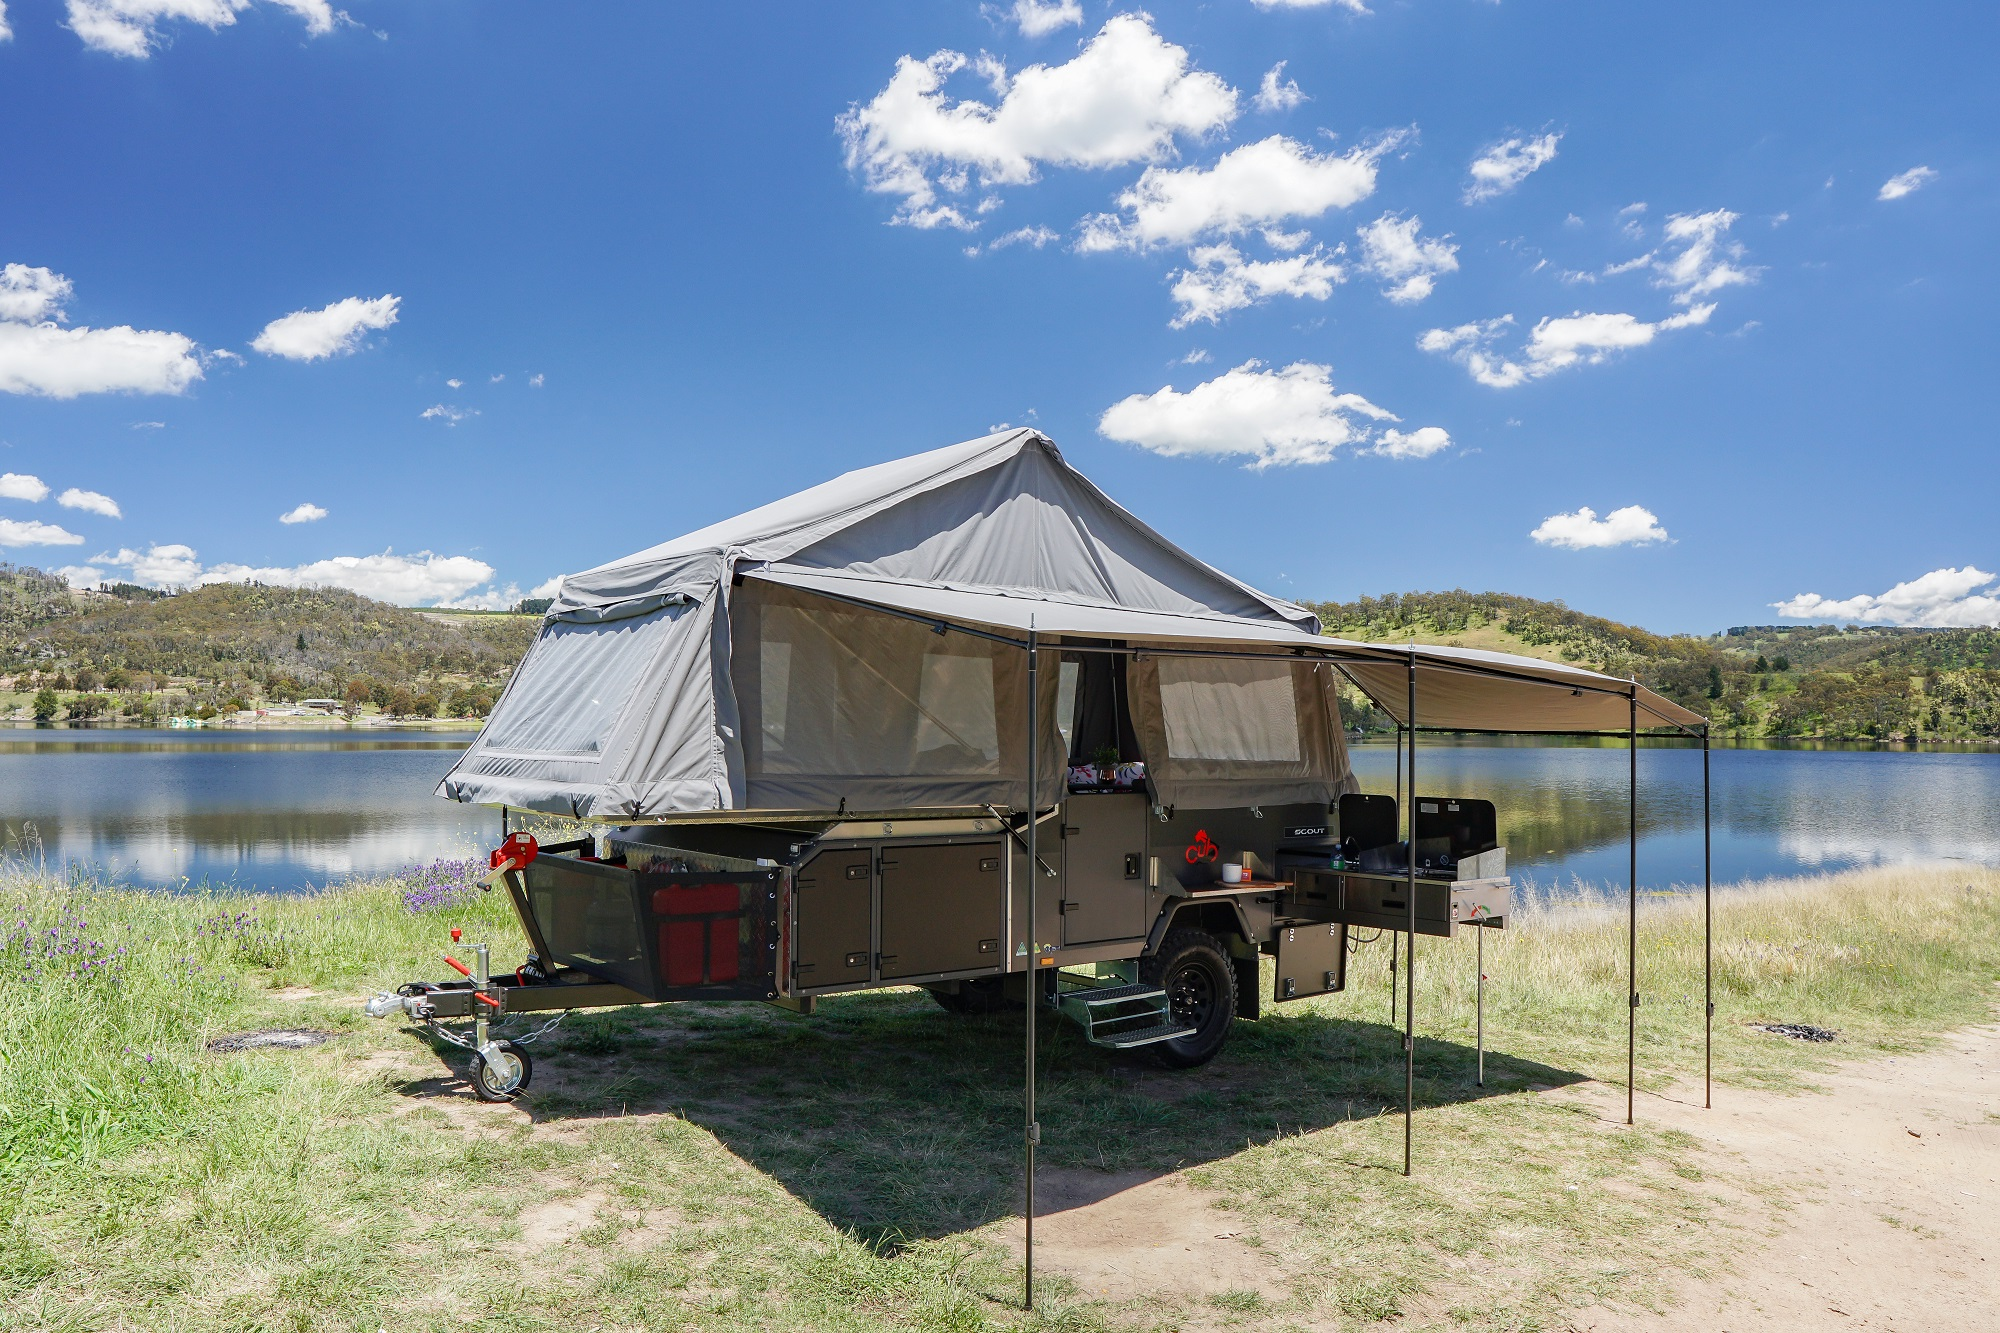 Camper review: Cub's new lightweight forward-fold Scout